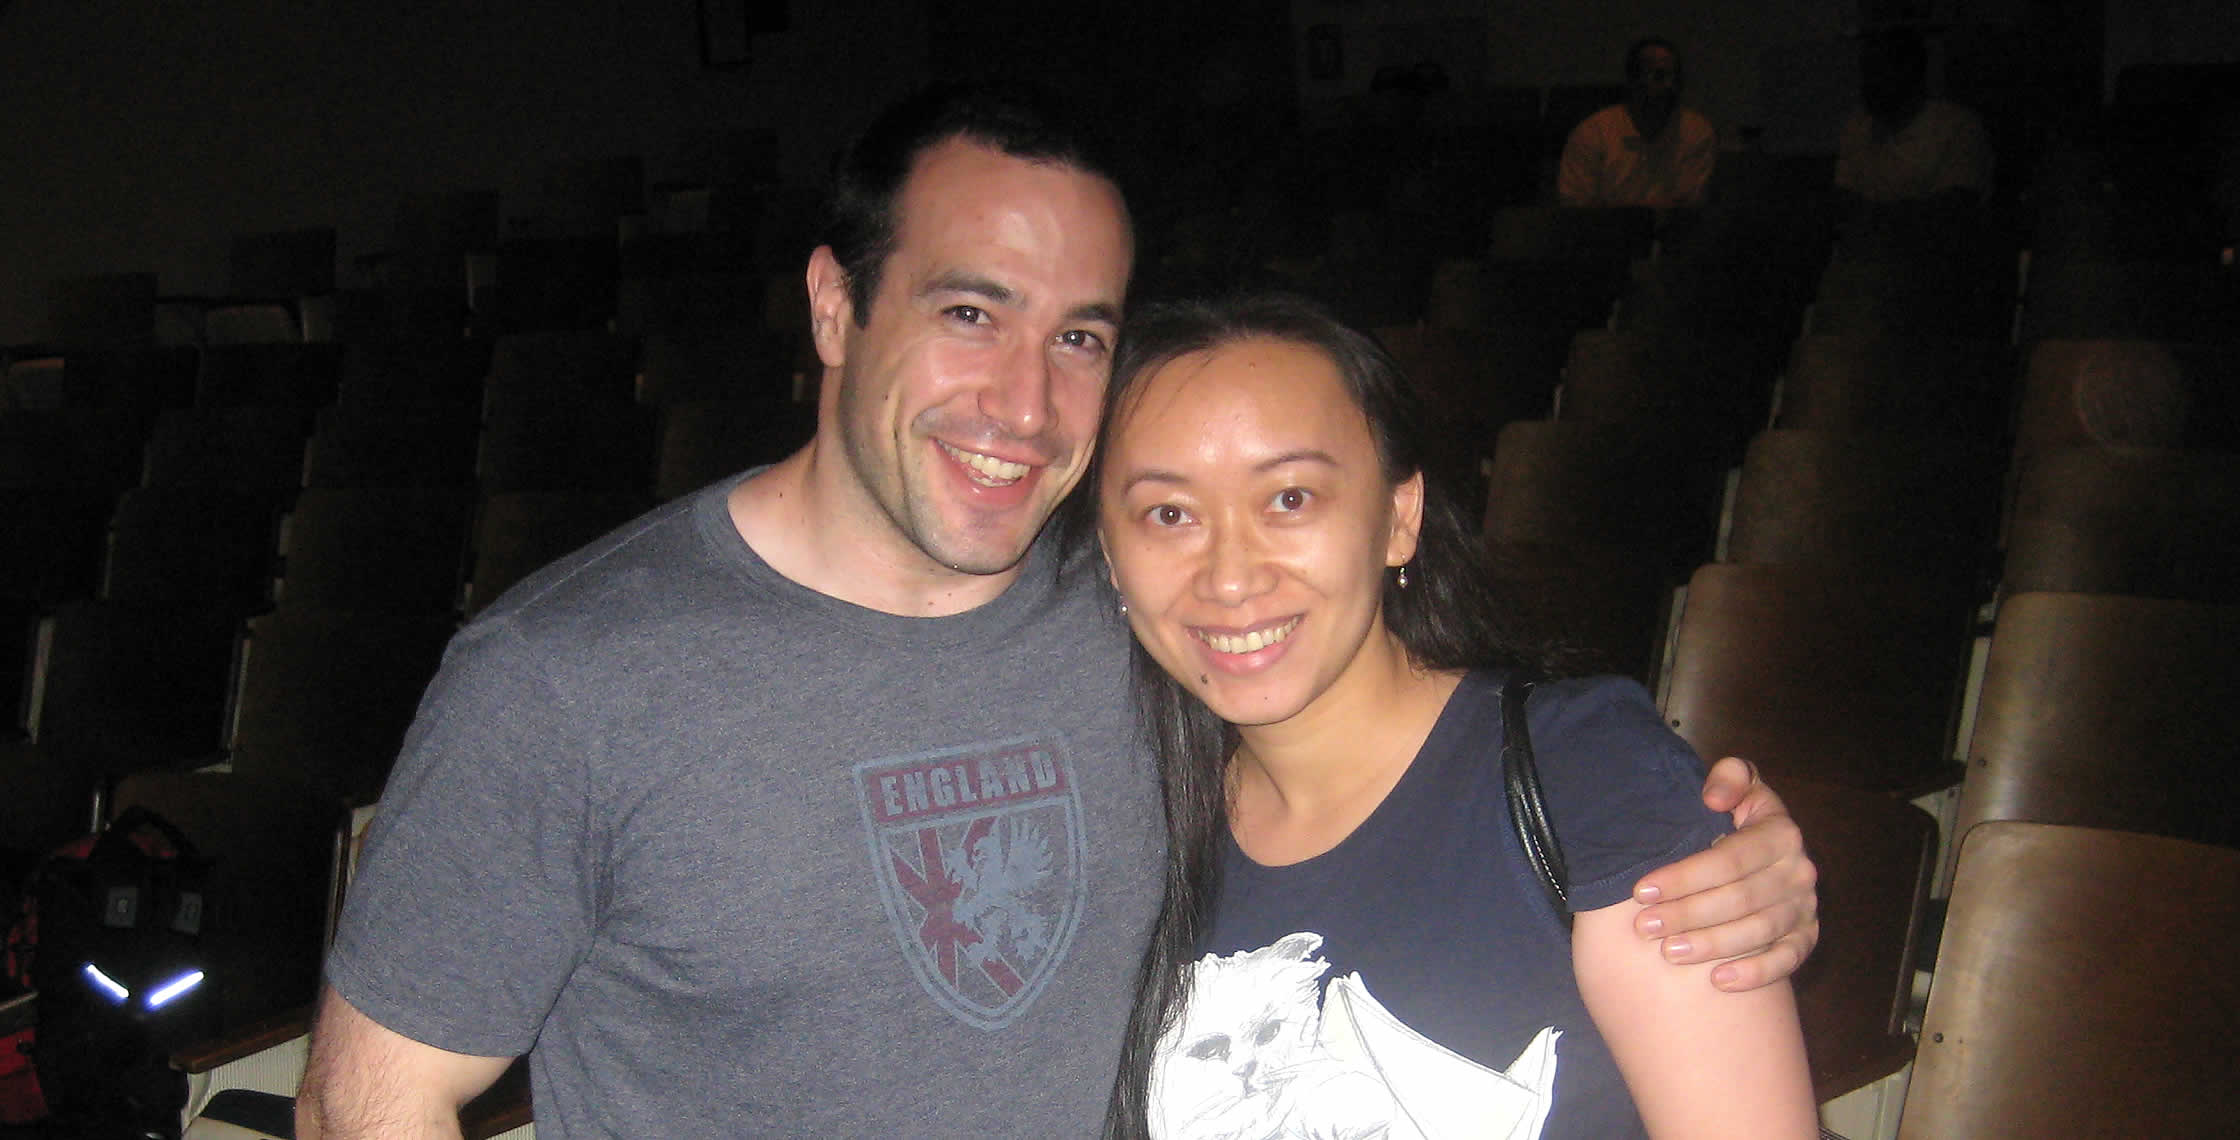 Ben Nadel at the New York ColdFusion User Group (Jun. 2008) with: Ye Wang